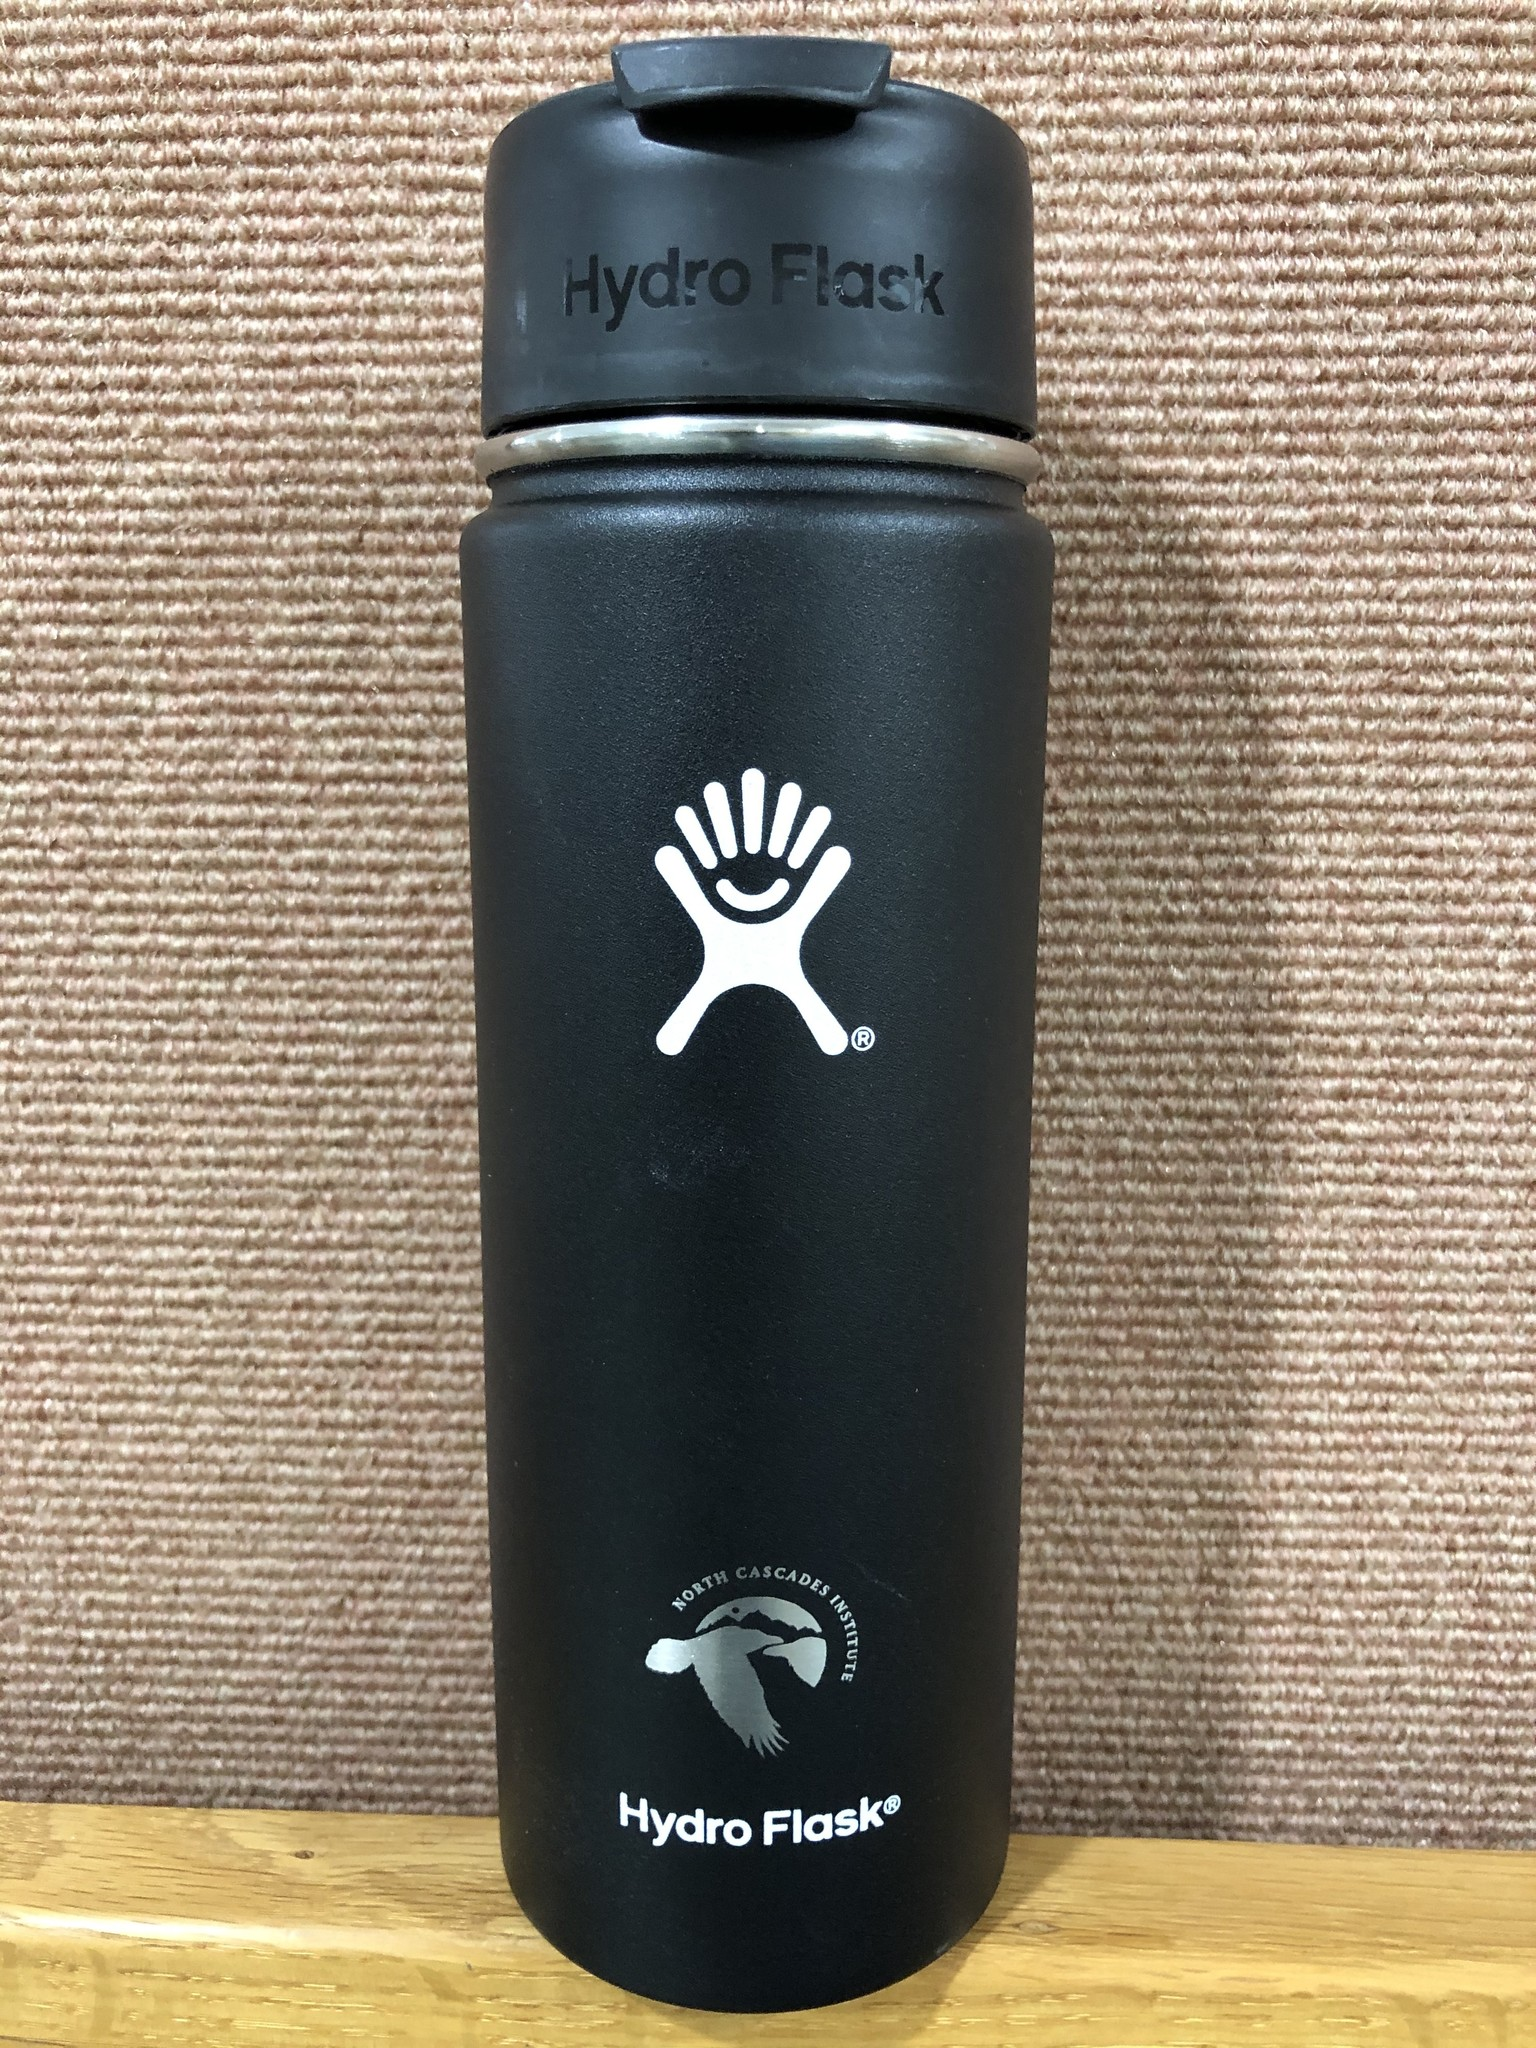 Hydro Flask Hot drink Bottle NCNP Olive 20 oz